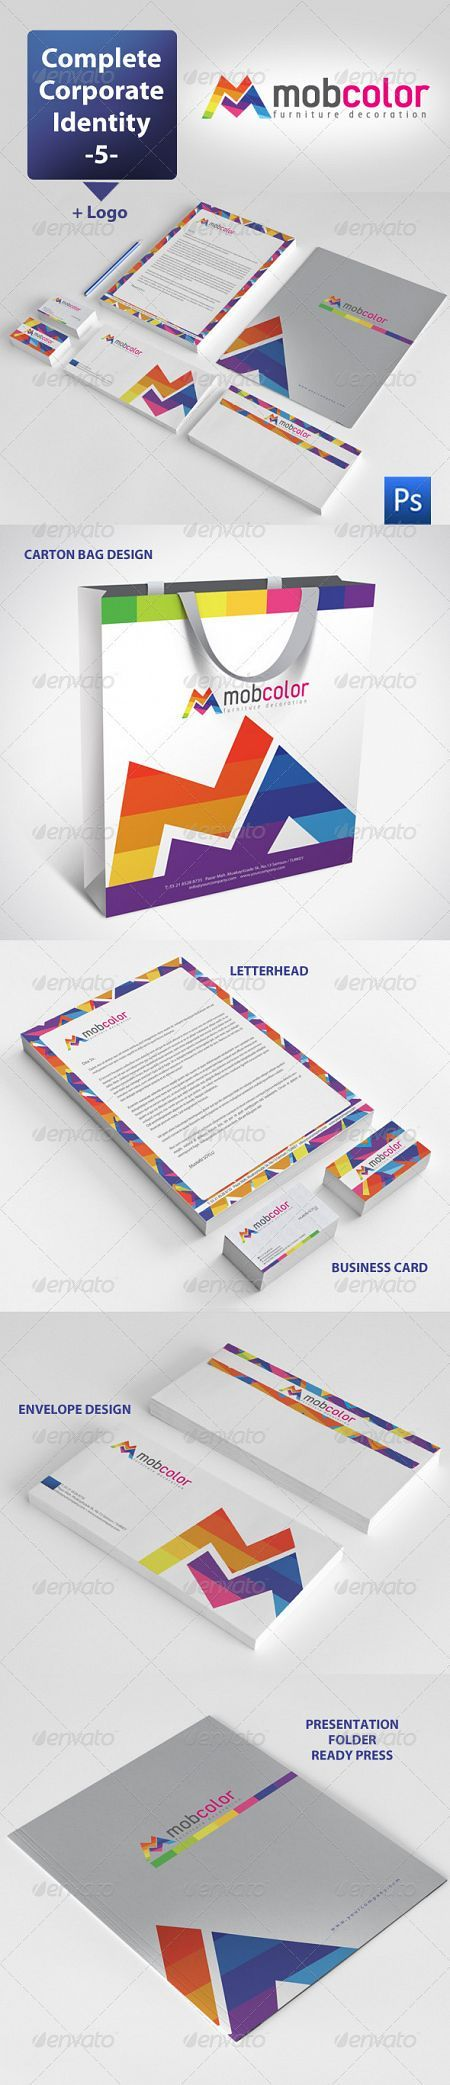 GraphicRiver - Mobcolor Corporate Identity Package